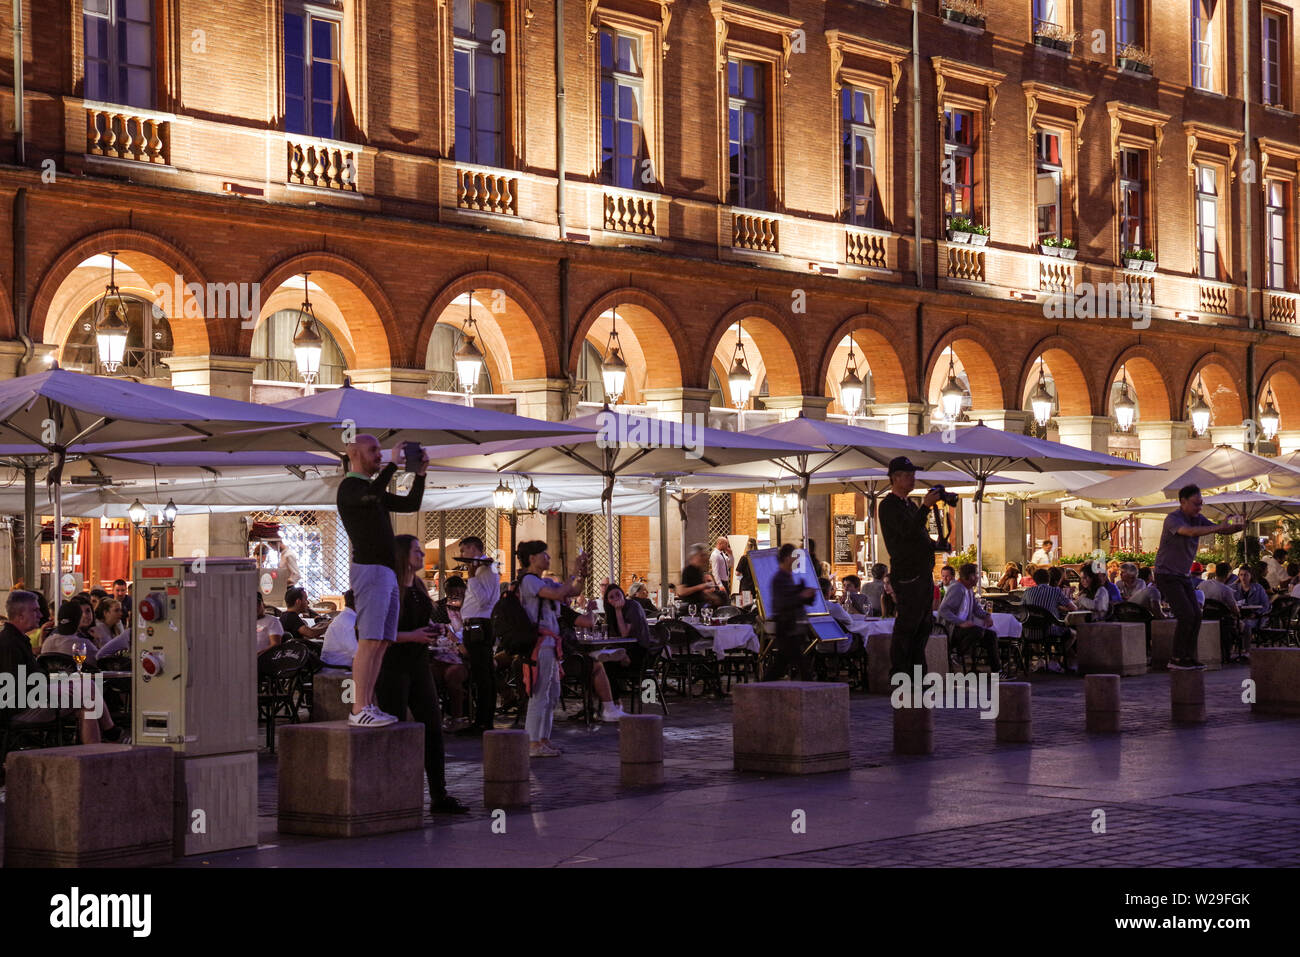 Tourists taking pictures at Place du Capitole in Toulouse (France) at night - Stock Image